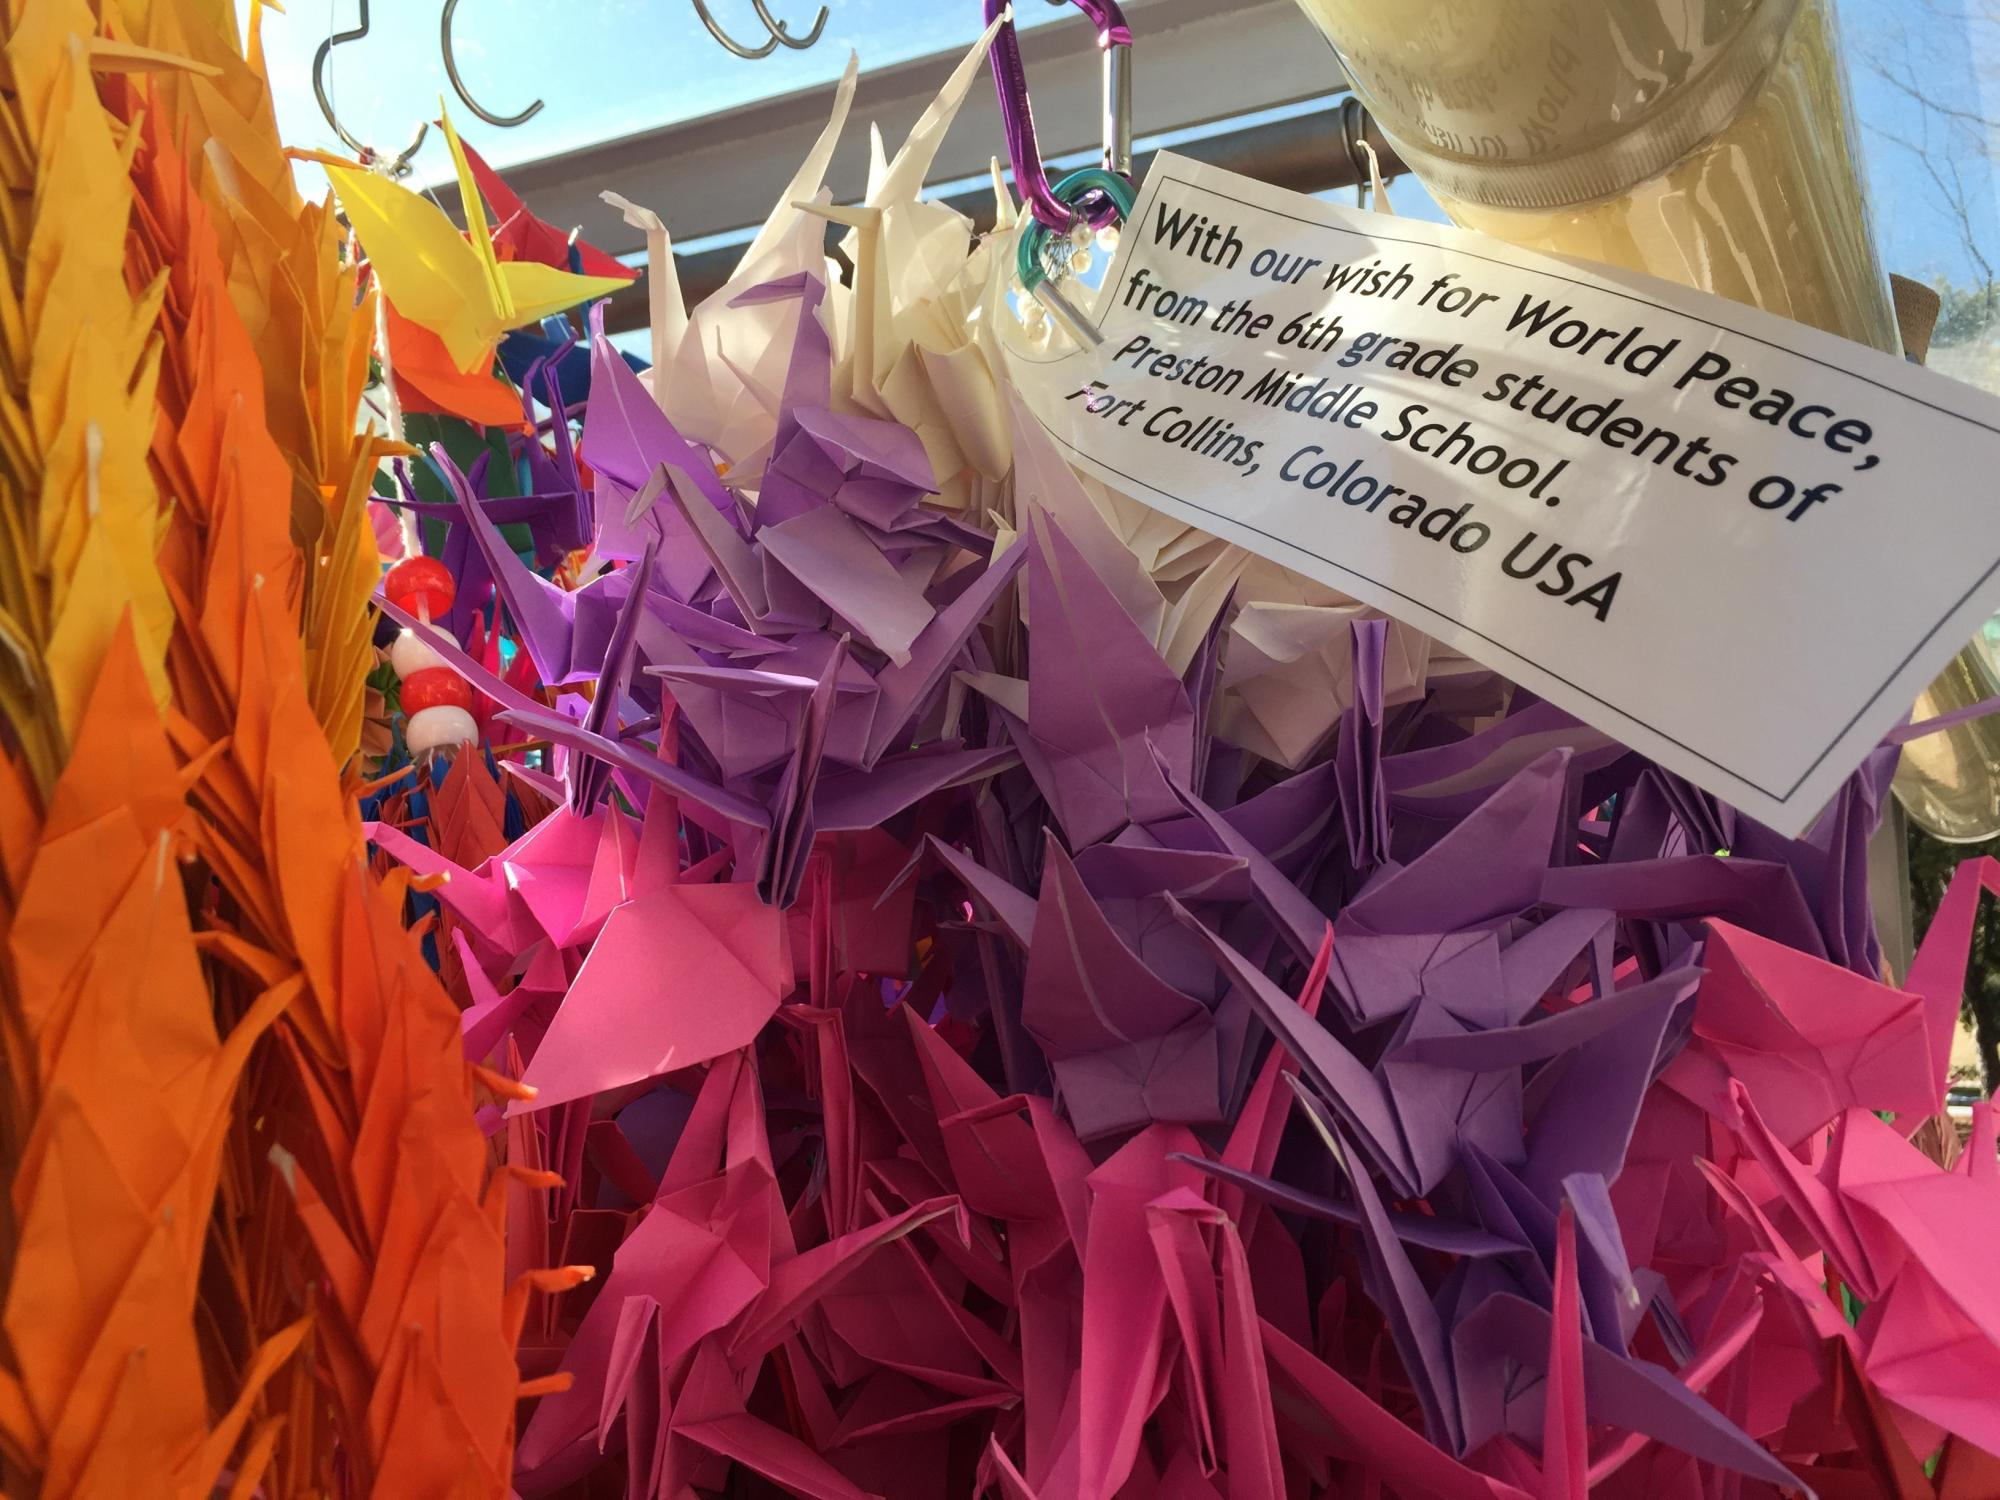 A close up photo of colorful paper cranes with a message of peace from Preston students